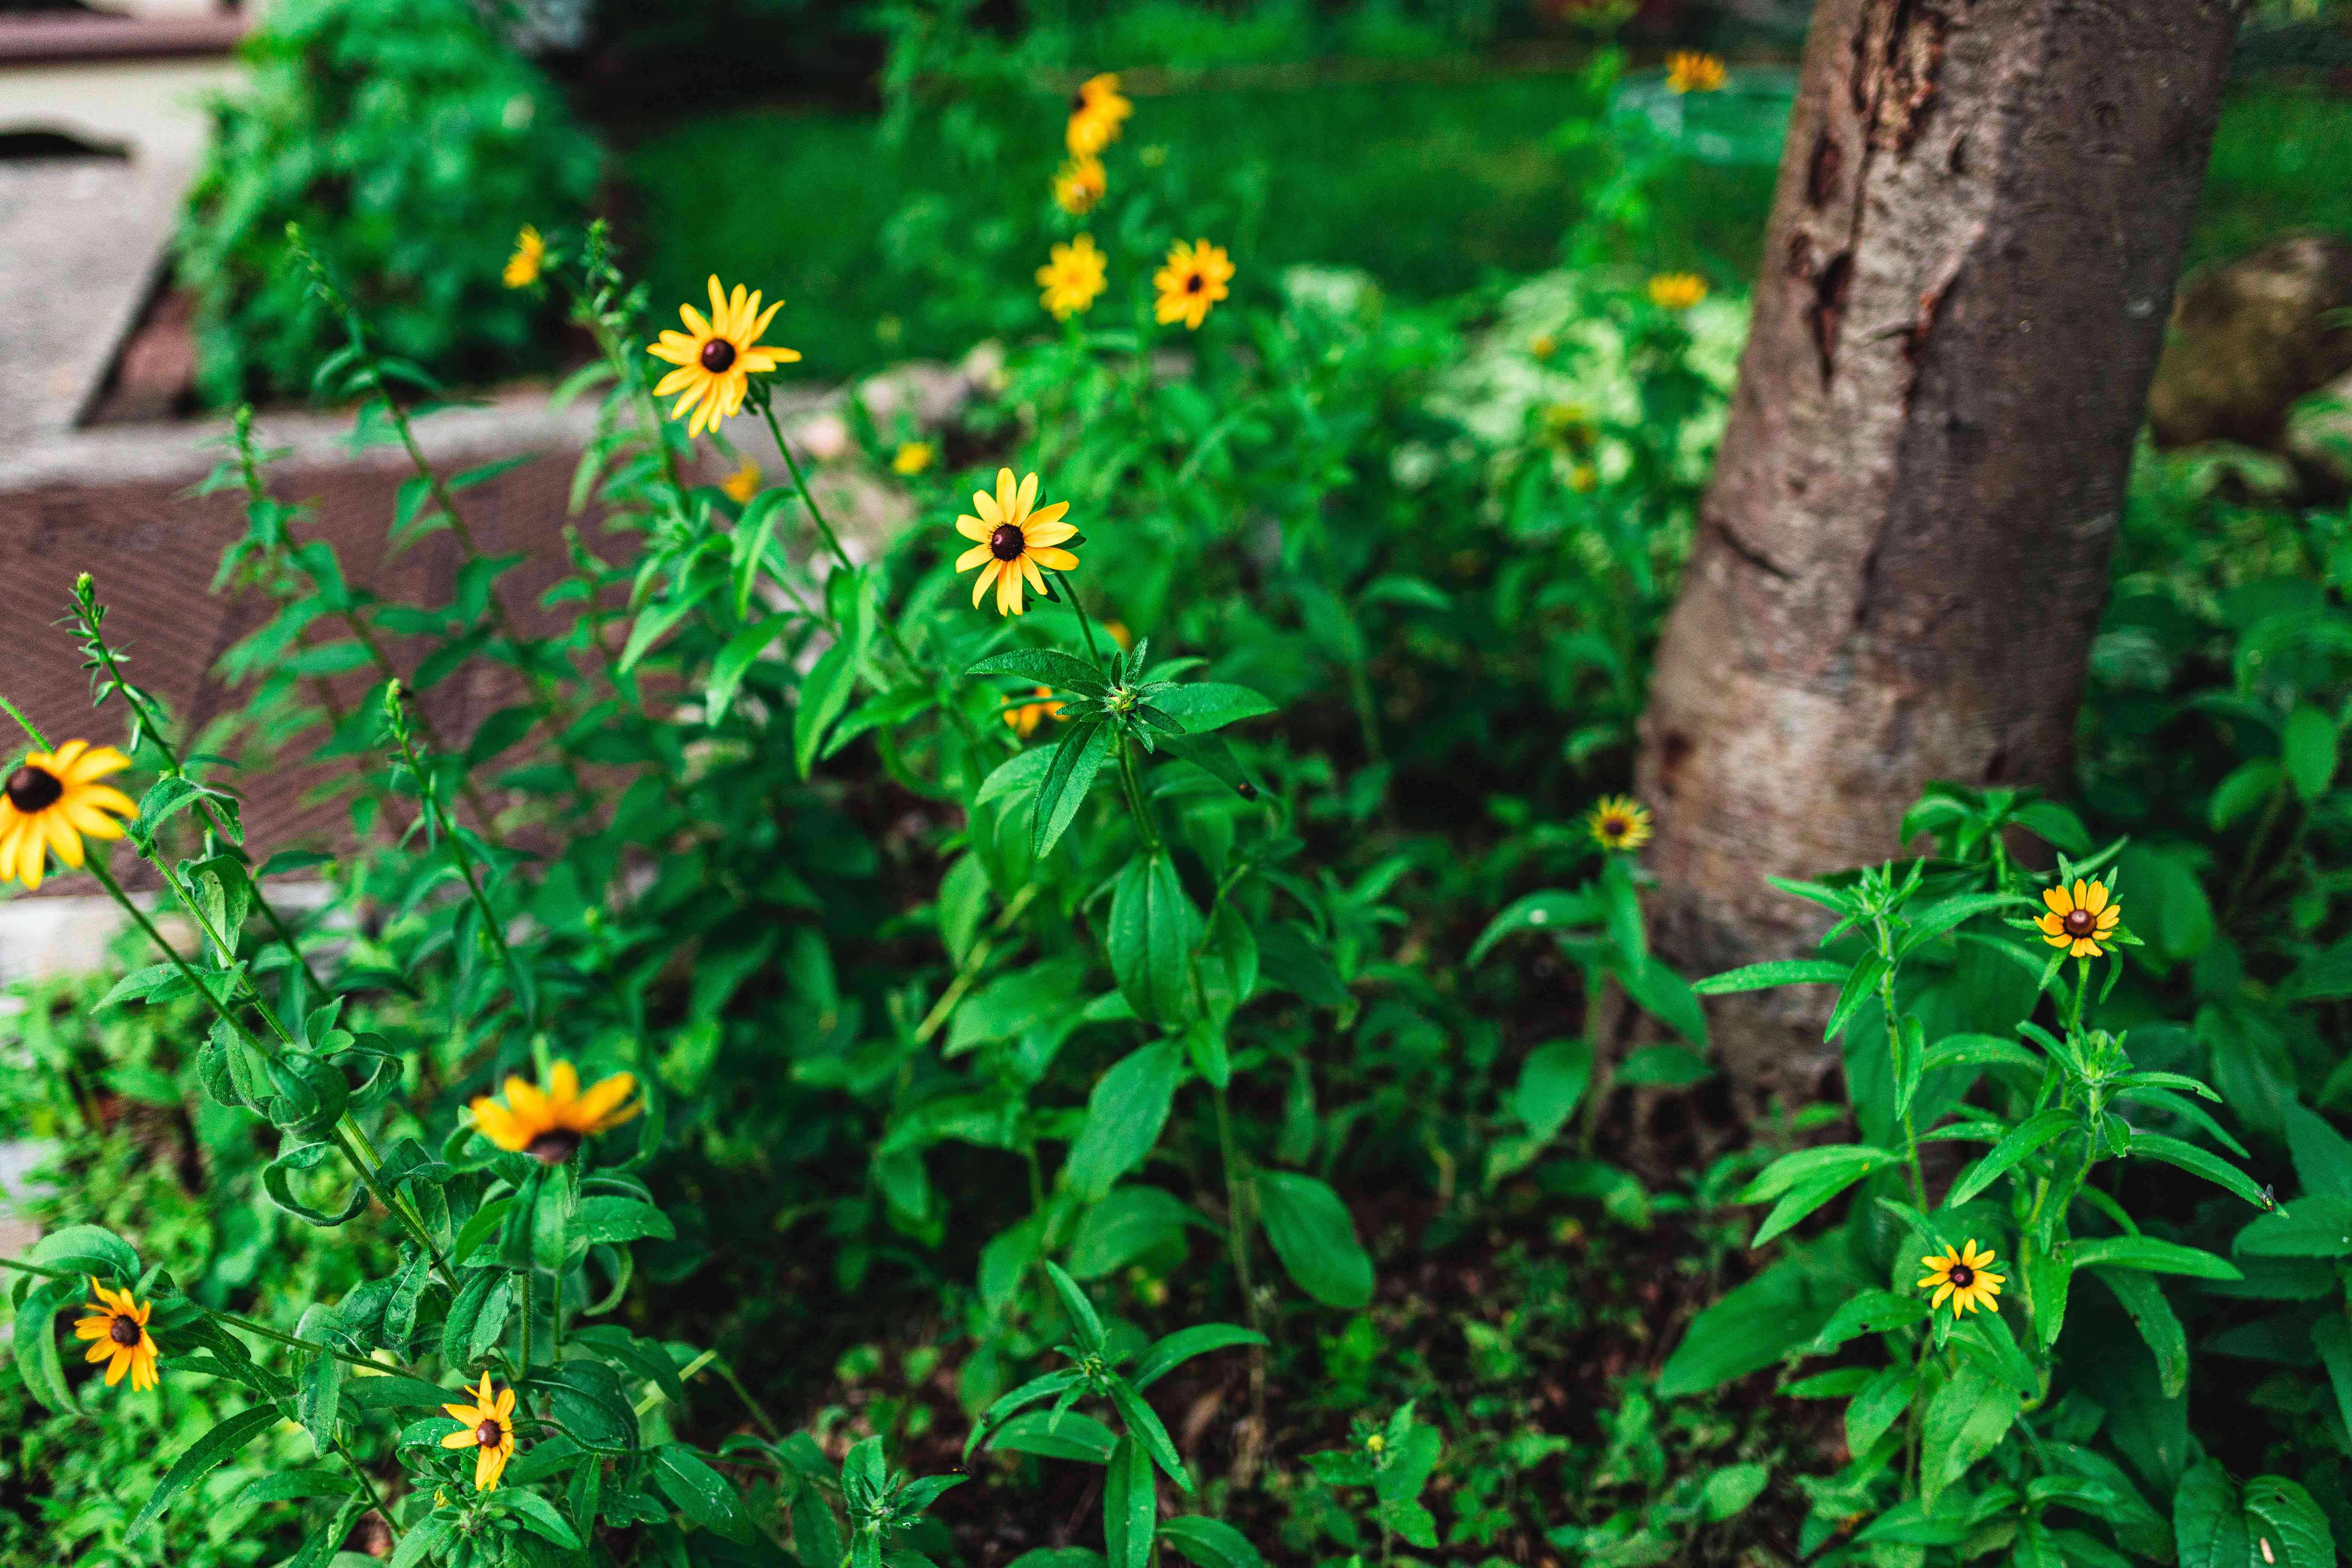 Black-eyed susan plant with yellow daisy-like flowers on stems with bright green leaves near tree base